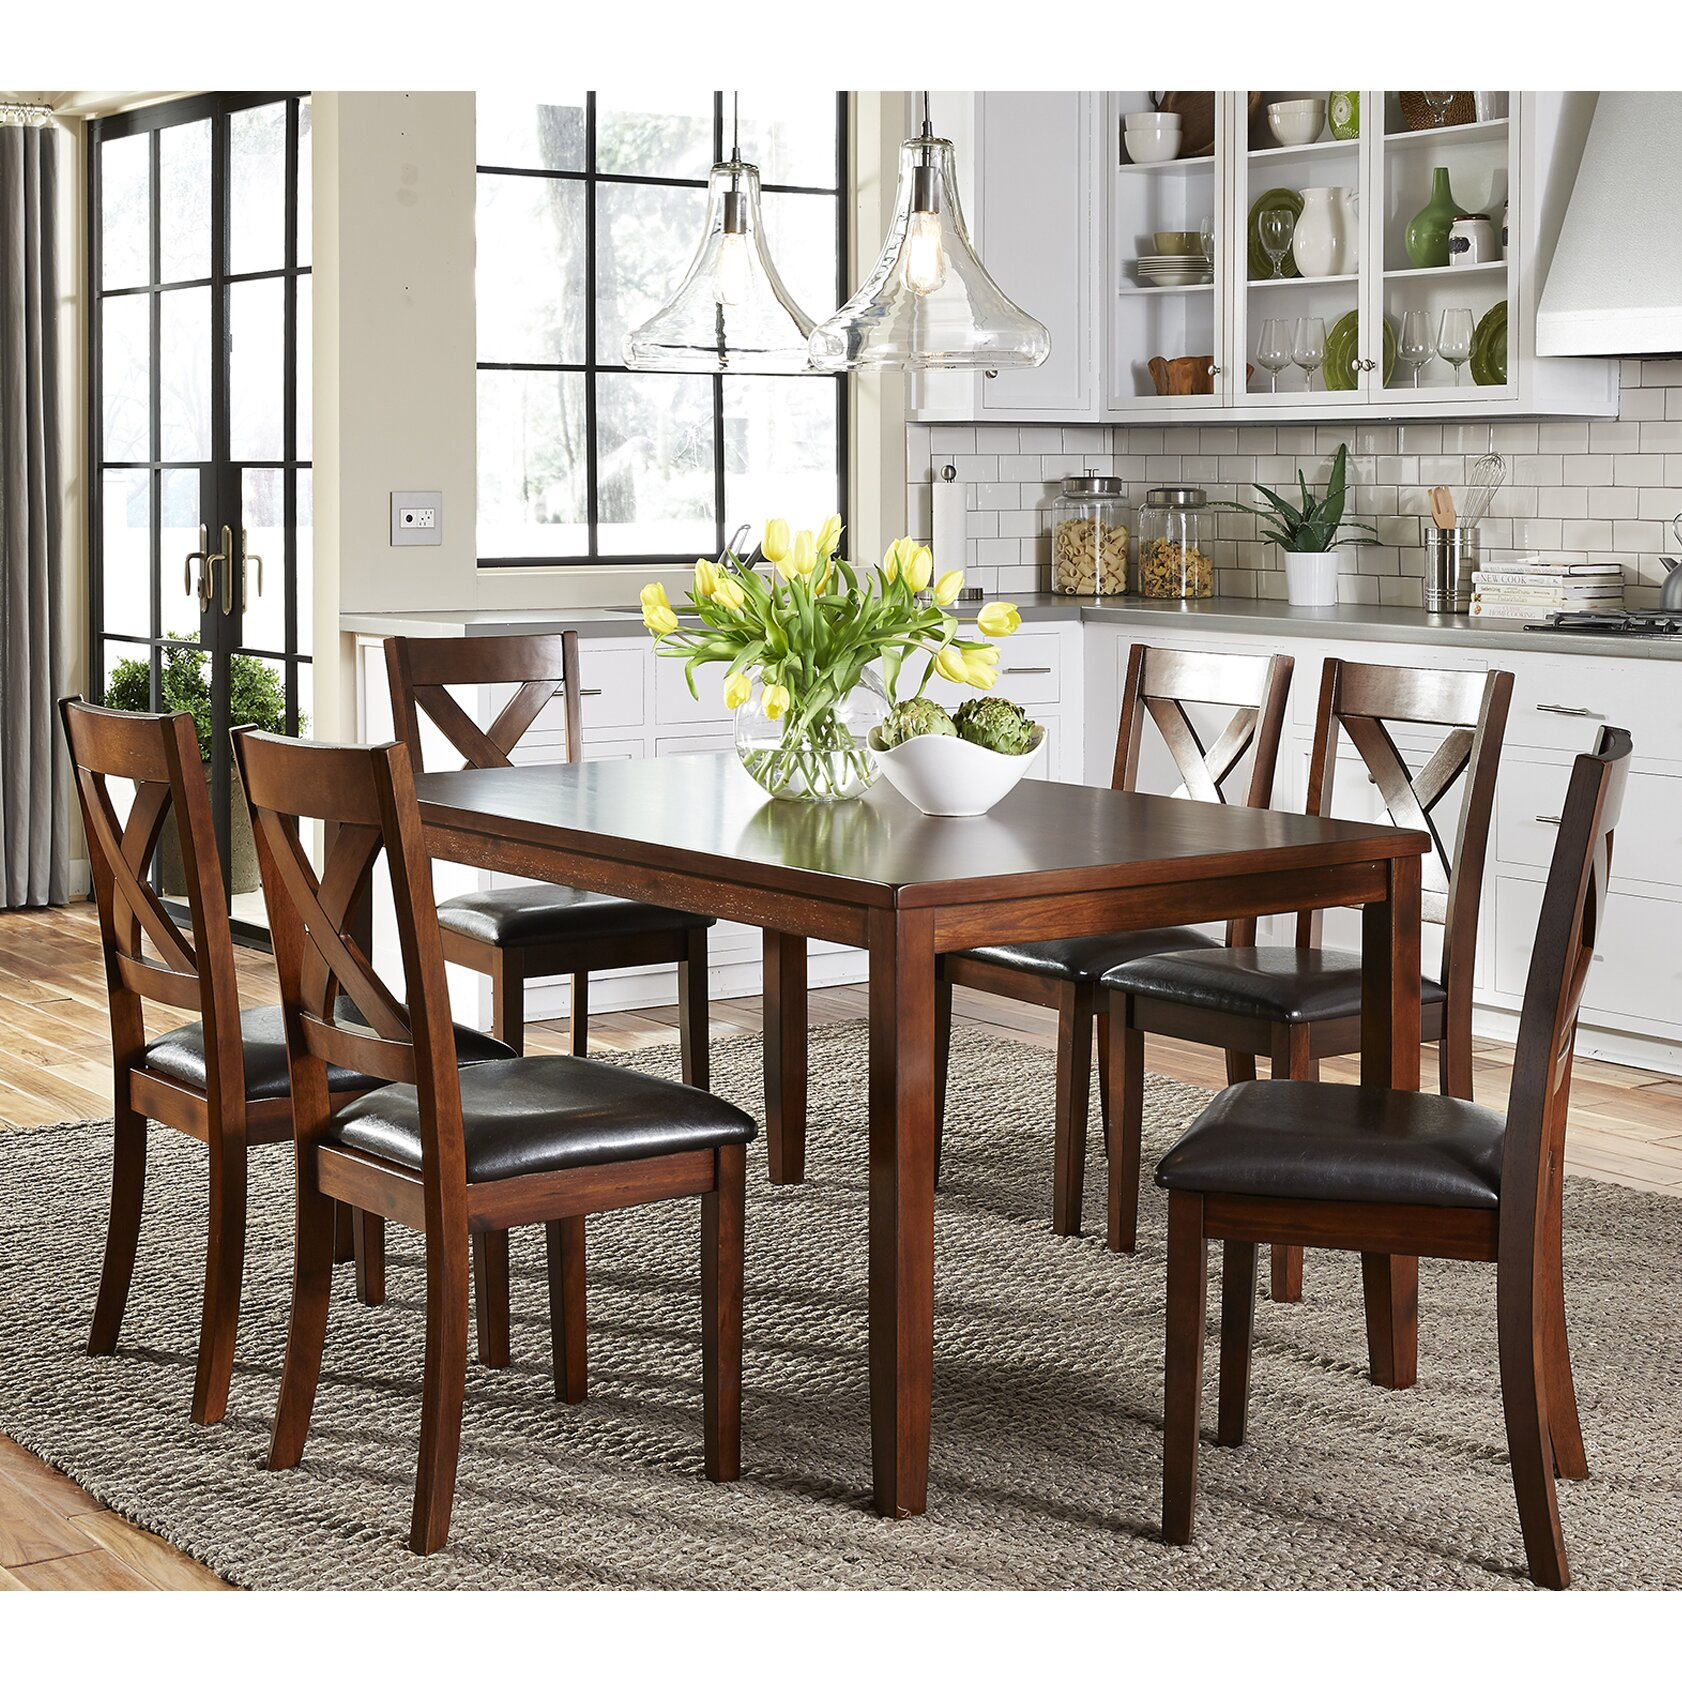 7 Piece Dining Room Set: Darby Home Co Nadine 7 Piece Dining Set